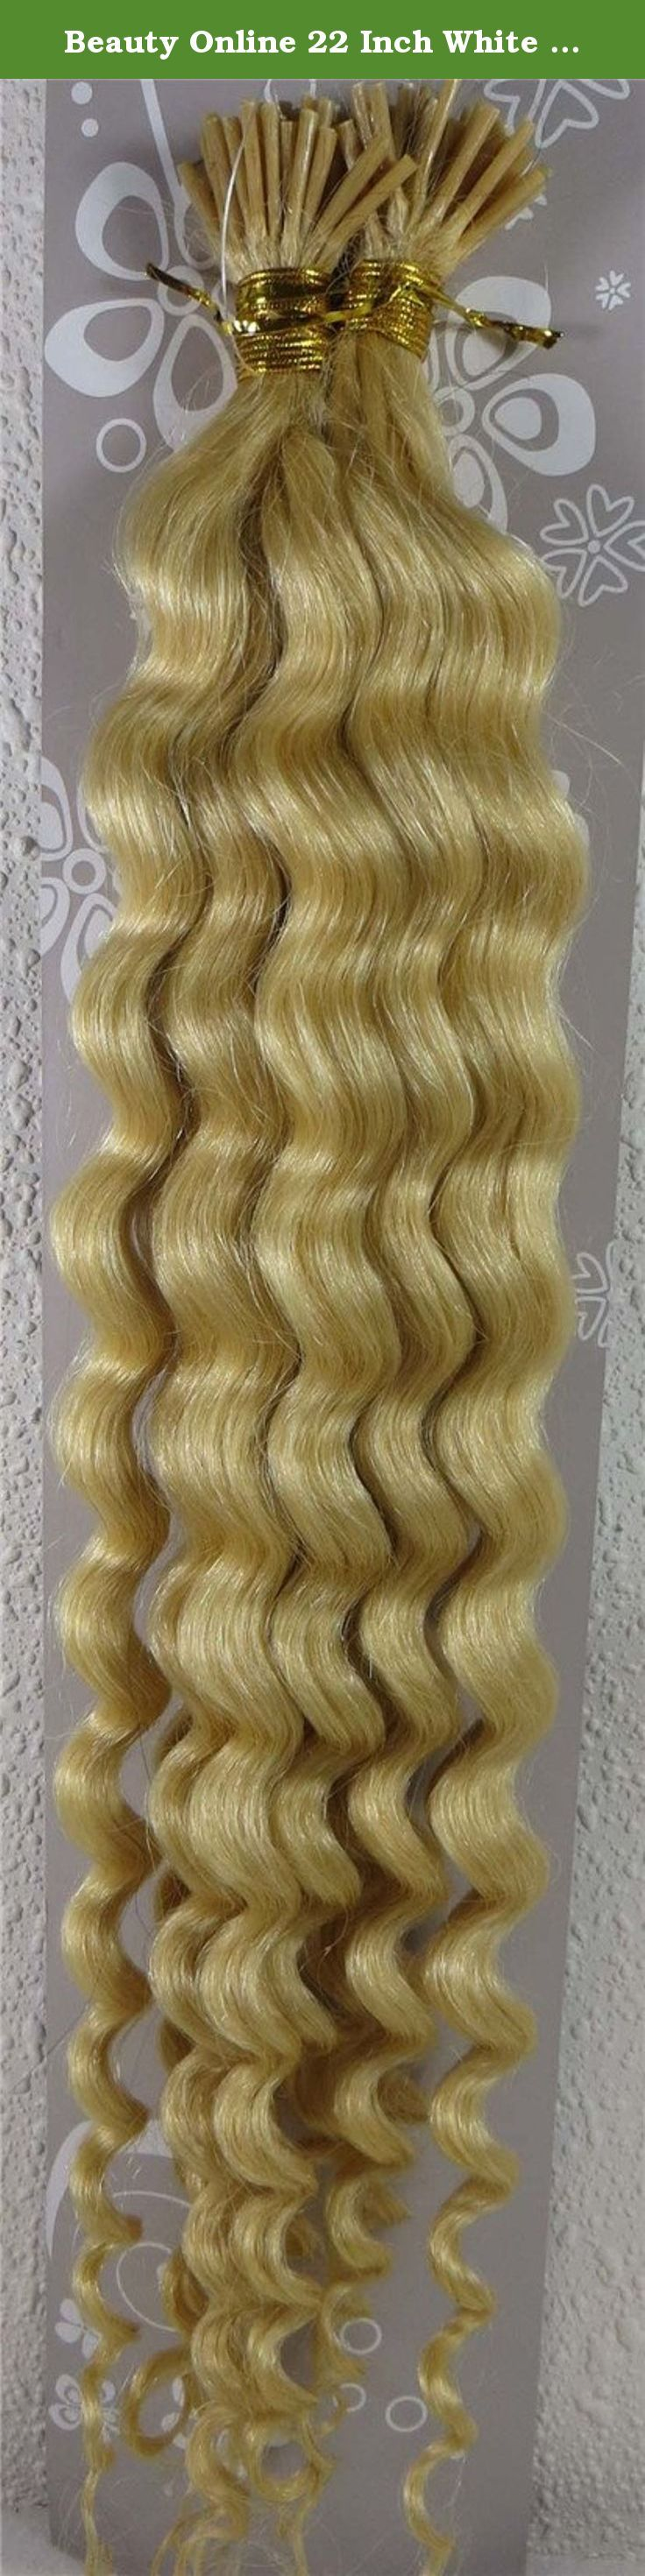 Beauty Online 22 Inch White Blonde (#60) 100s Deep Wave Stick I Tip Fusion Human Hair Extensions - 100% Remy Human Hair Extensions. 100% remy human hair extensions and very competitive price. stick tip/I tip hair Can be washed, heat styled. High quality, tangle free, silky soft. 200-300strands are recommended for whole head. THERE ARE ANOTHER COLOURS AND SIZES CAN BE CHOSEN IN OUR SHOP.